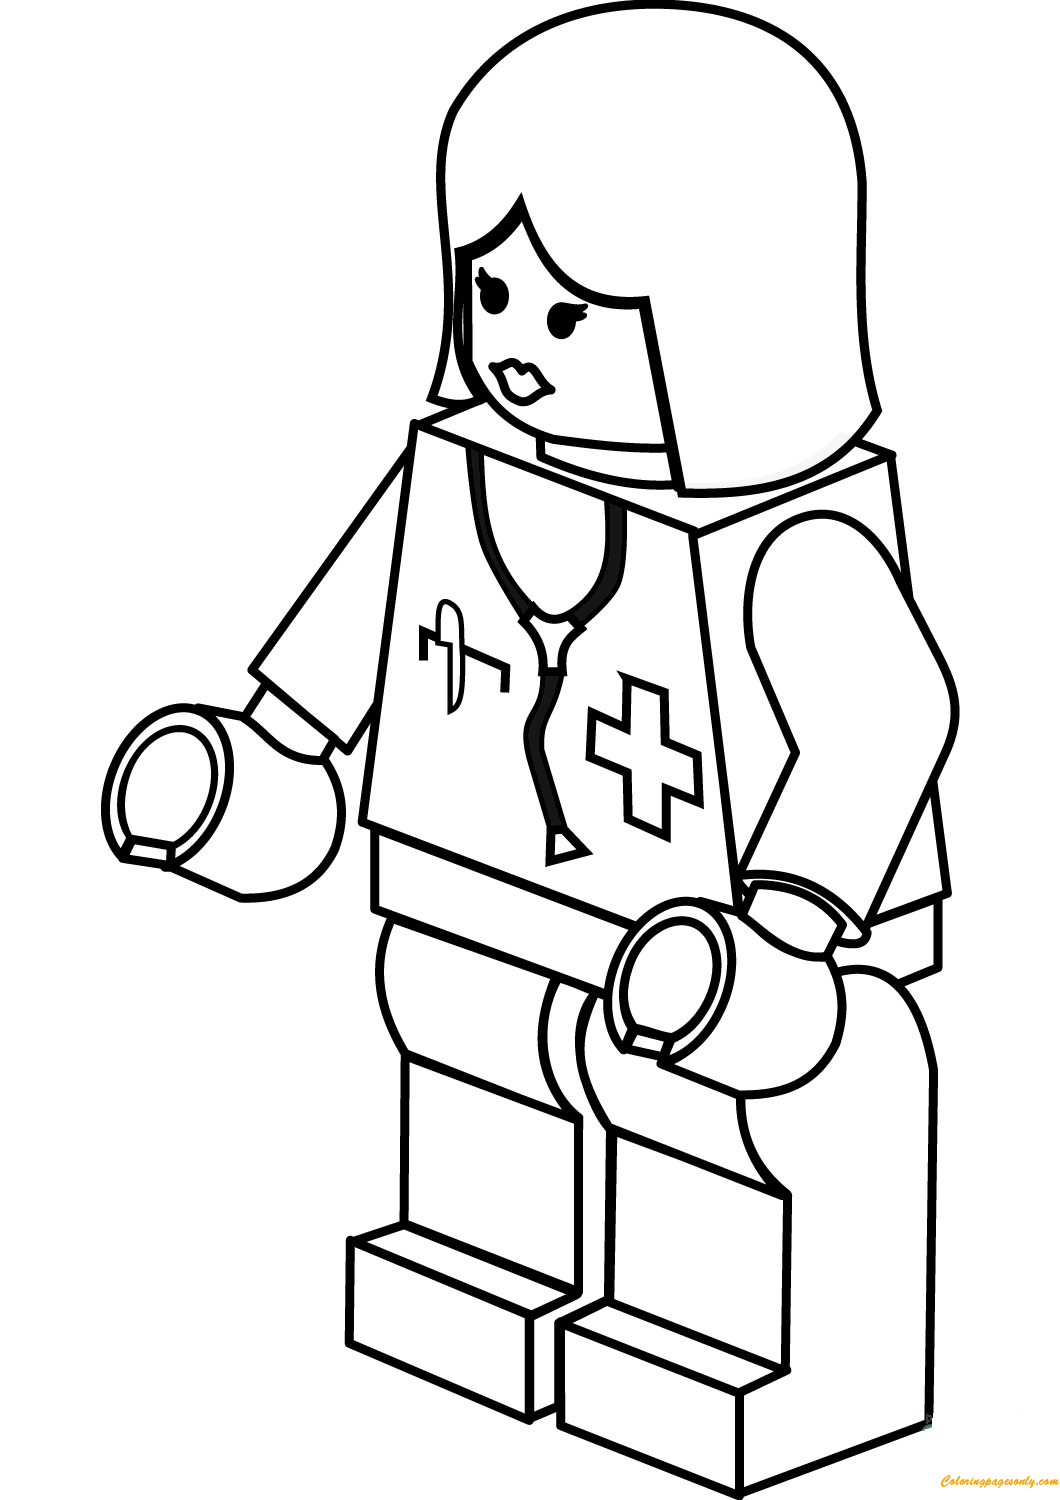 Lego City Lady Doctor Coloring Page Free Coloring Pages